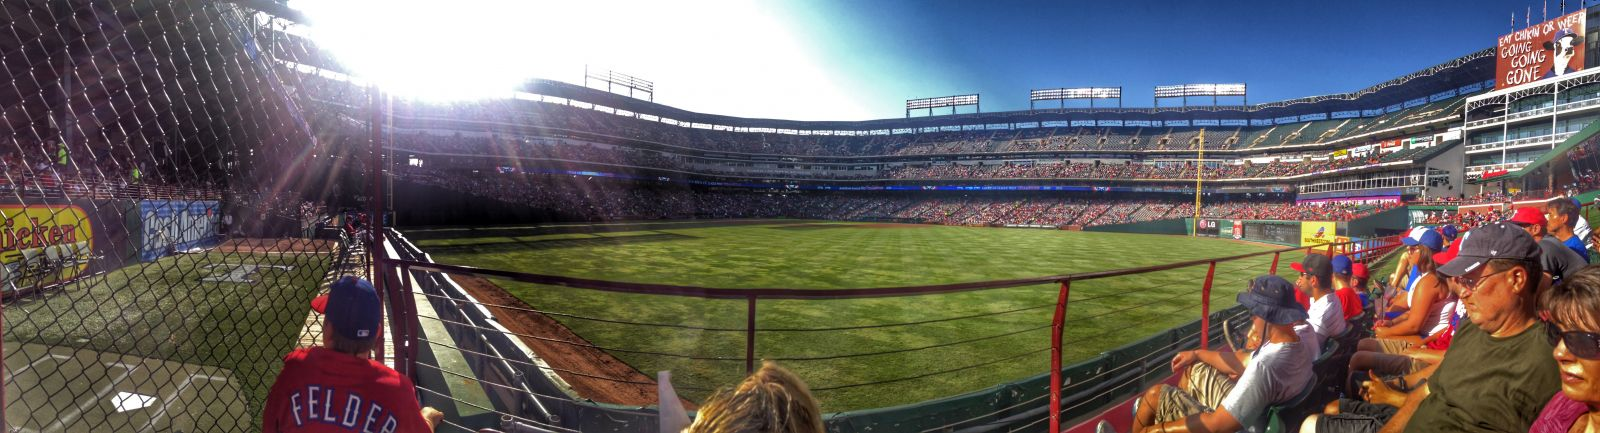 Seat View for Globe Life Park Section 51, Row 2, Seat 3